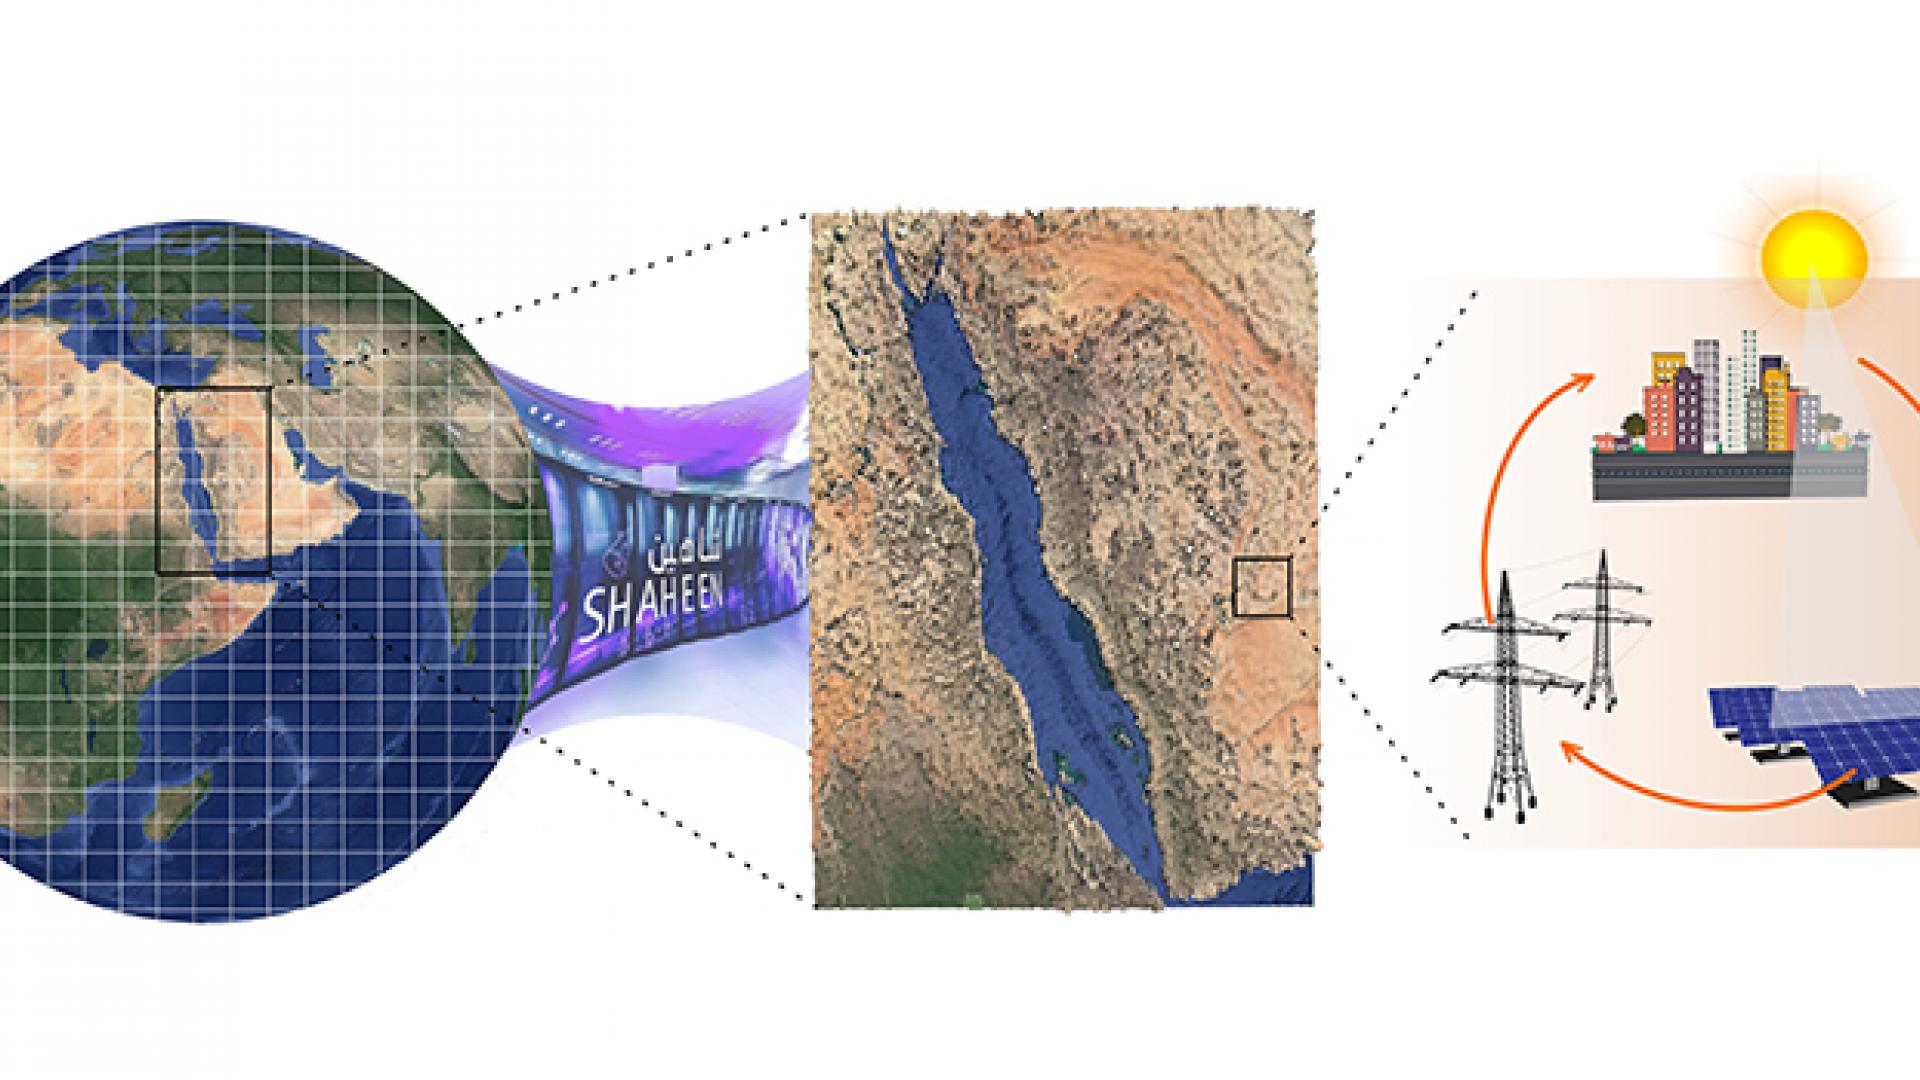 KAUST PSE AMCS CNR ERSE ERPE MARS STAT ECRC Measuring Solar Stores Of The Arabian Peninsula